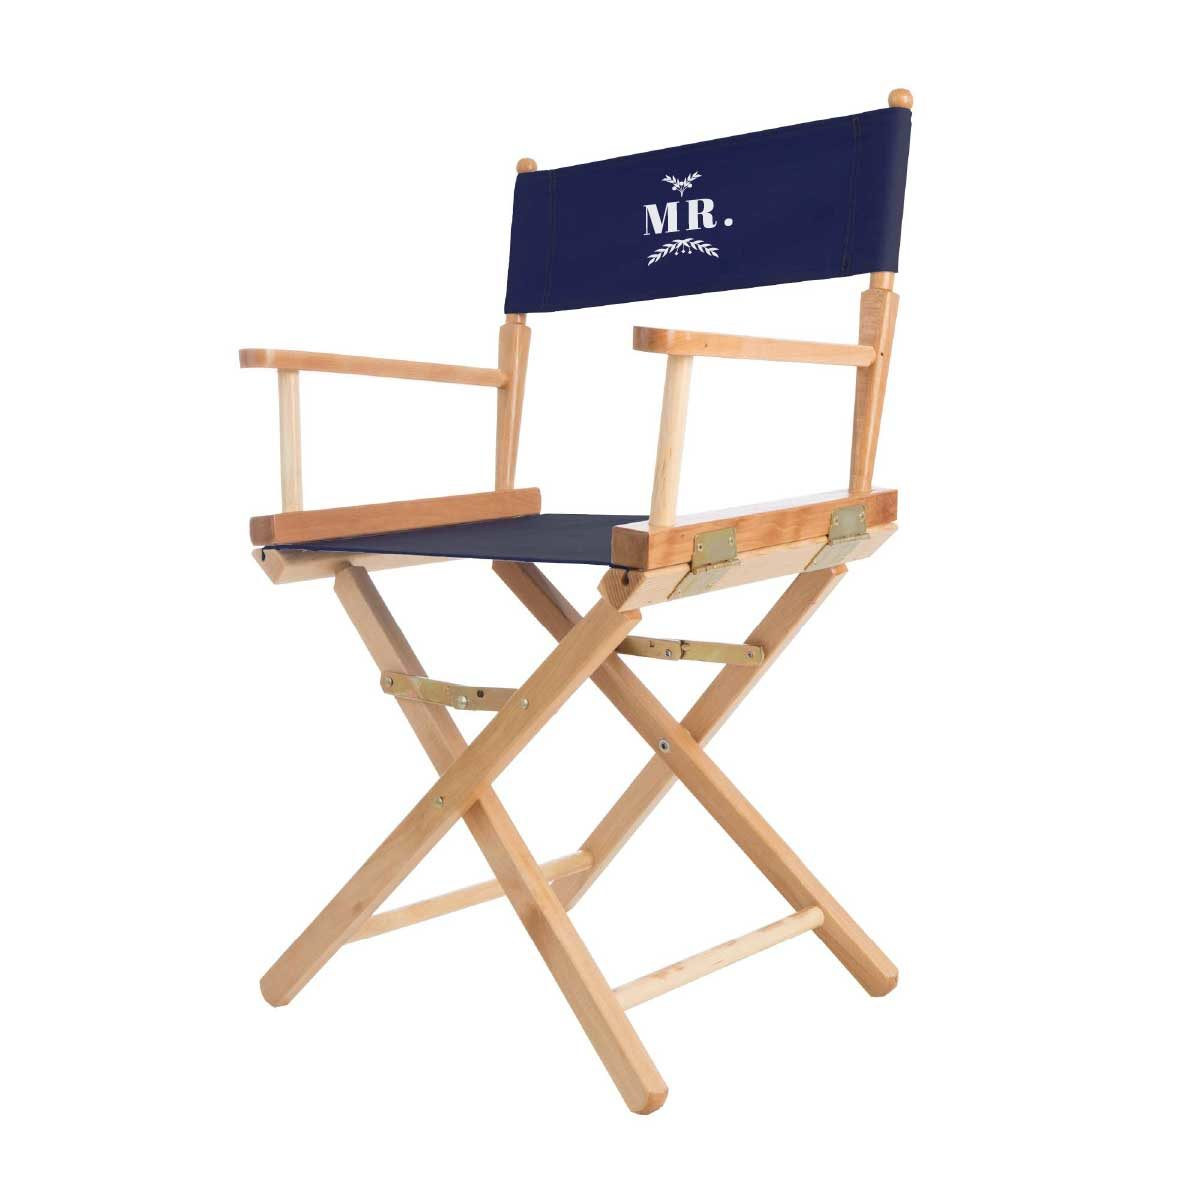 The Laurel Mr Sweetheart Chair